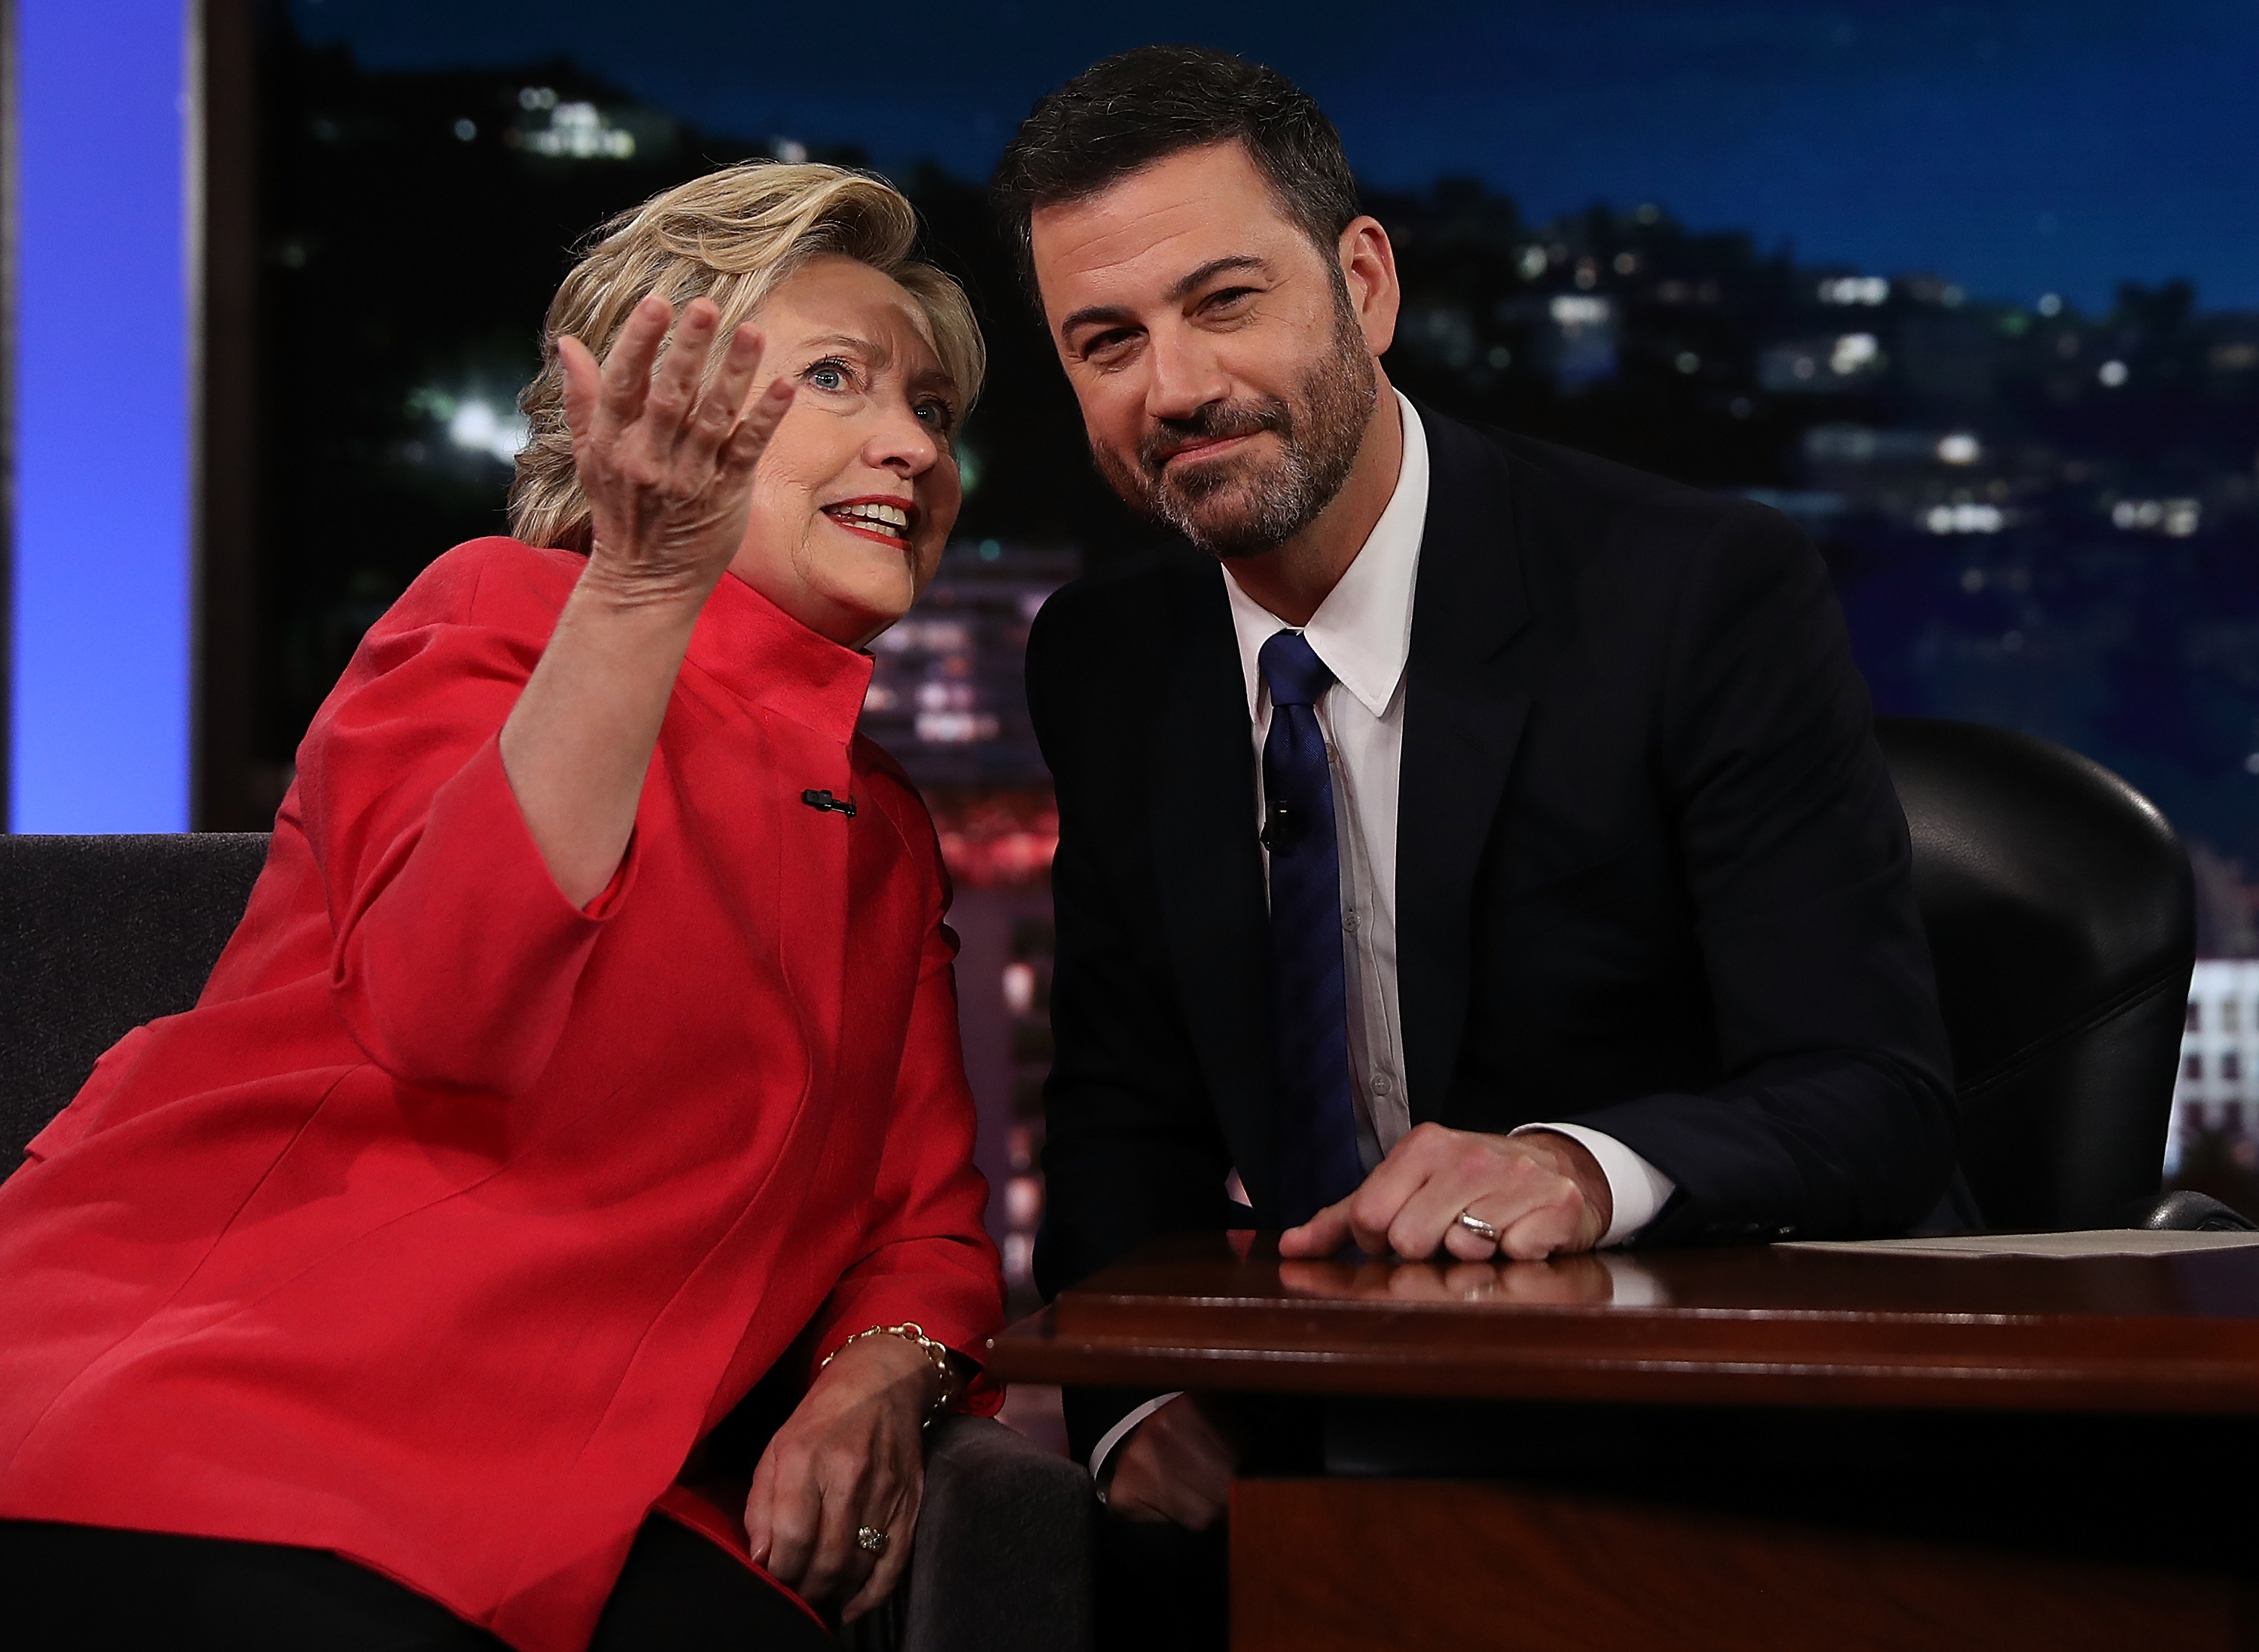 Hillary Clinton went on 'Jimmy Kimmel' and addressed some seriously insane rumors